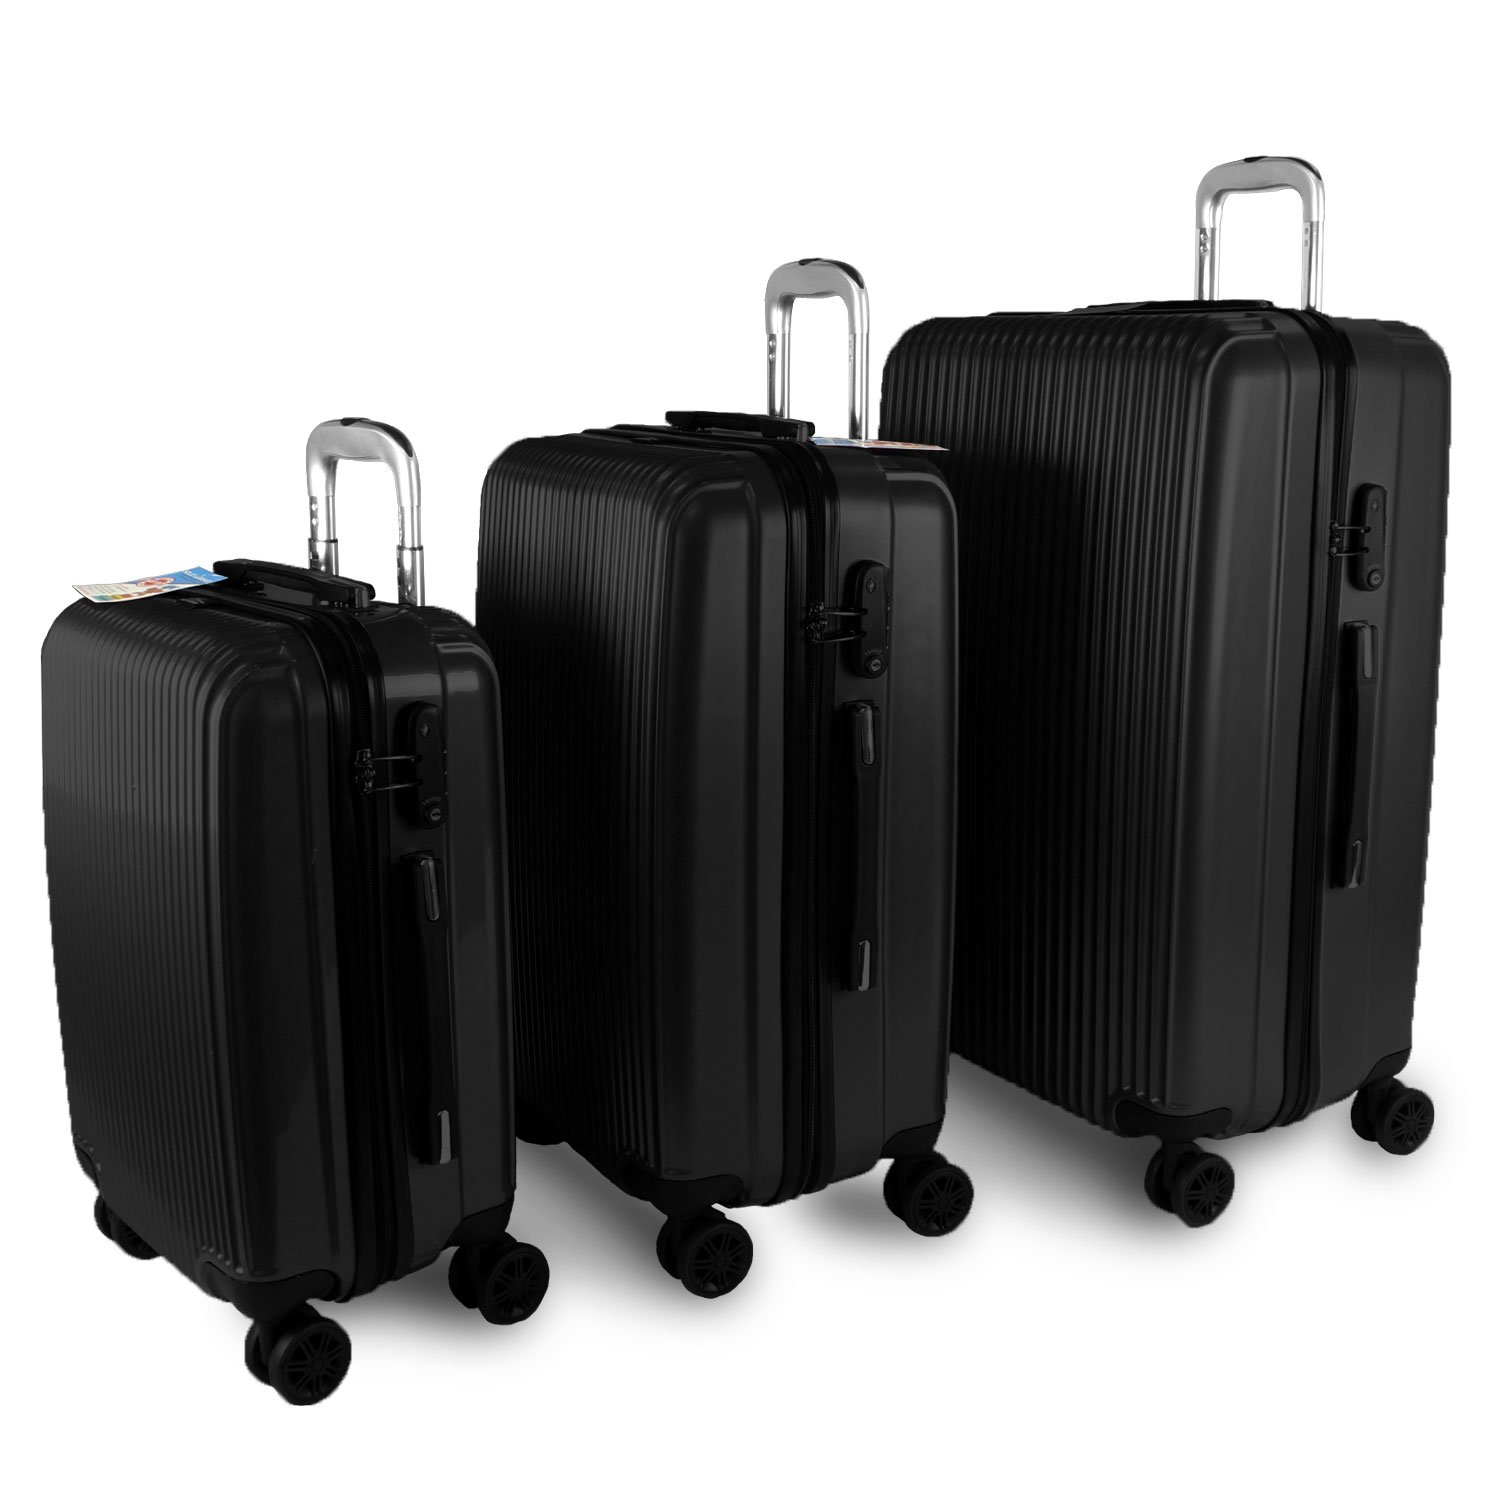 Solid Luggage Set 3 Piece Polycarbonate PC 4 Wheels Rolling Light Weight Spinner Suitcase Bundle TSA Approved Luggage Locks (Black)